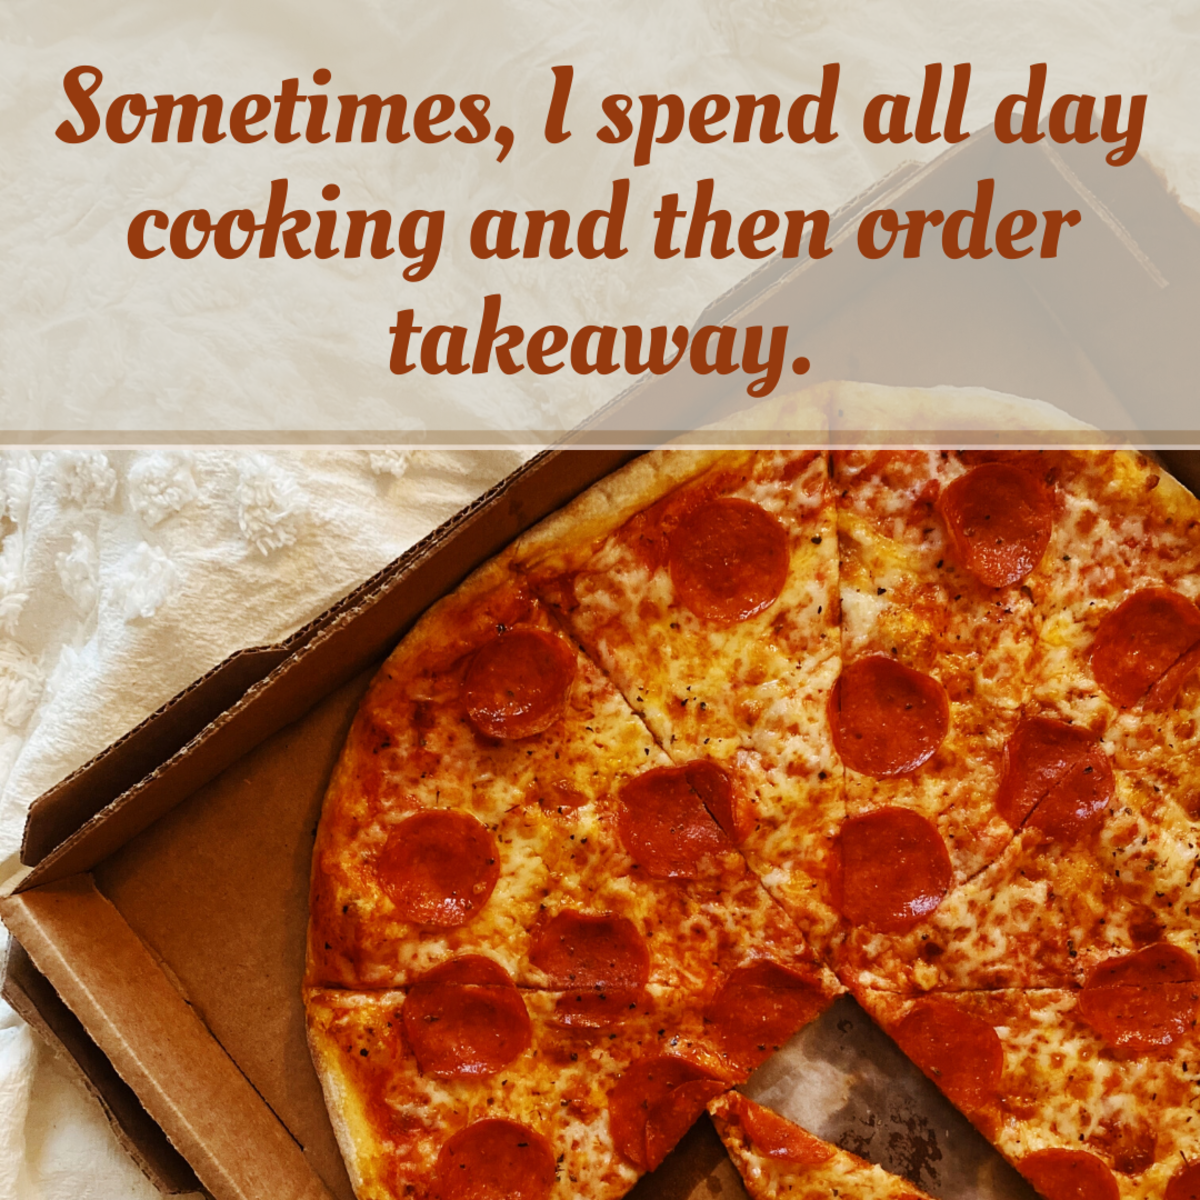 Everyone knows what it's like to give up and order takeaway!